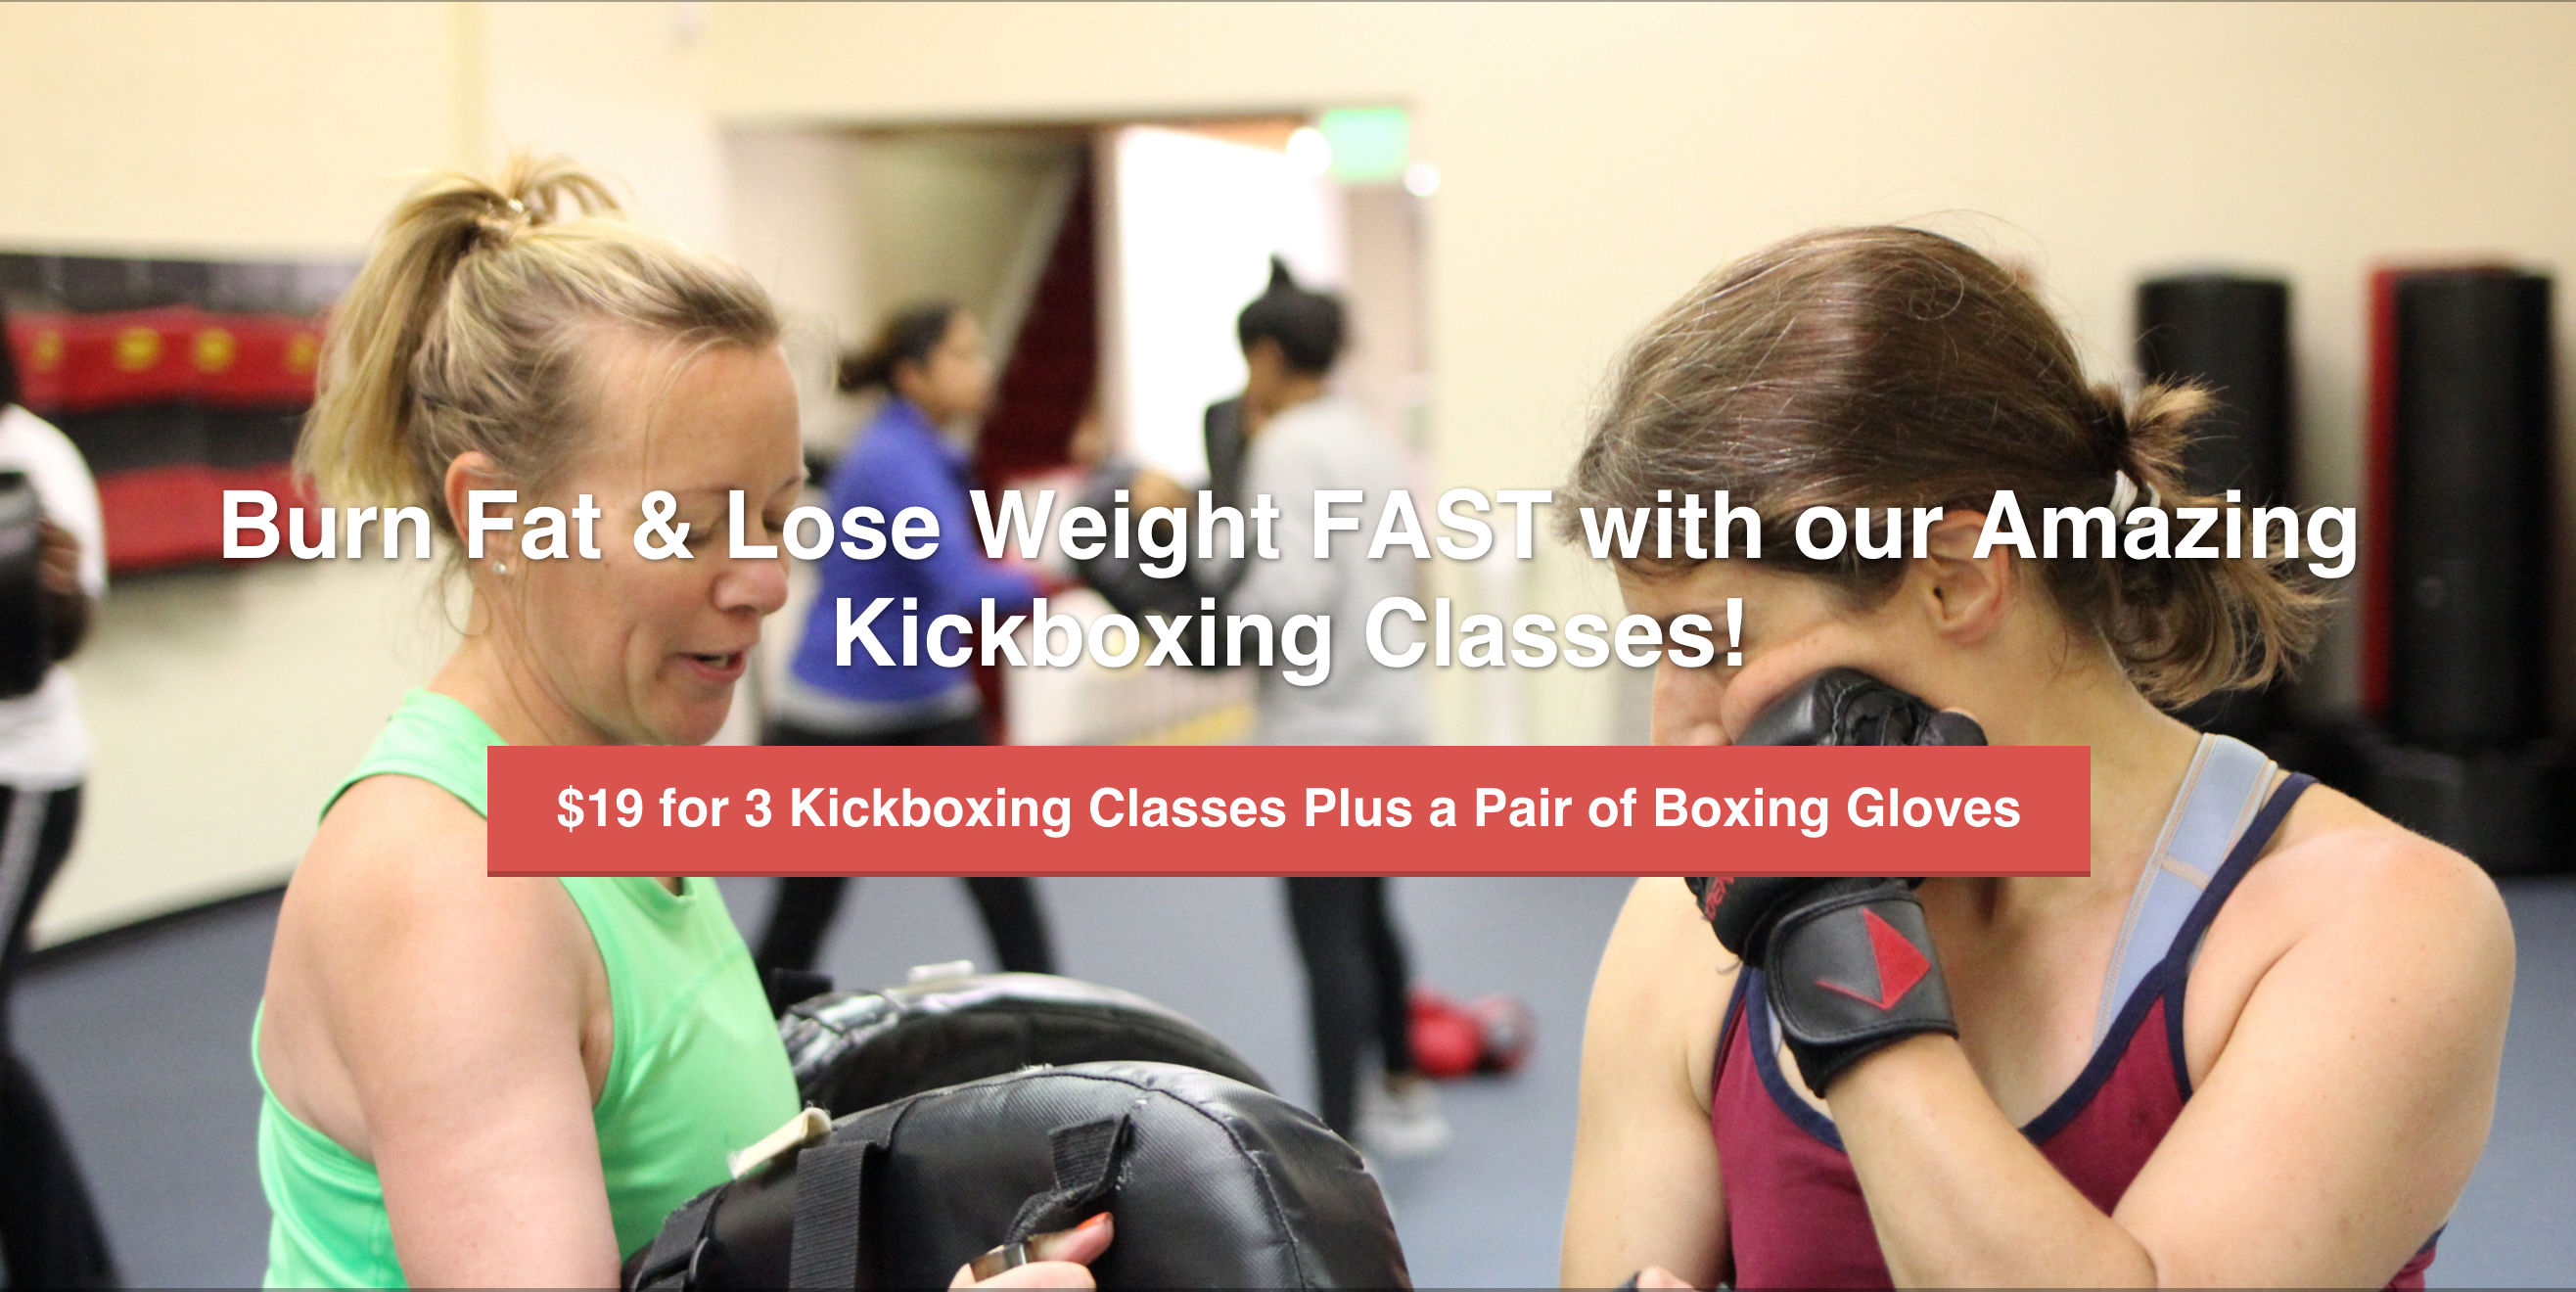 3 Kickboxing Classes and Free Gloves $19.95